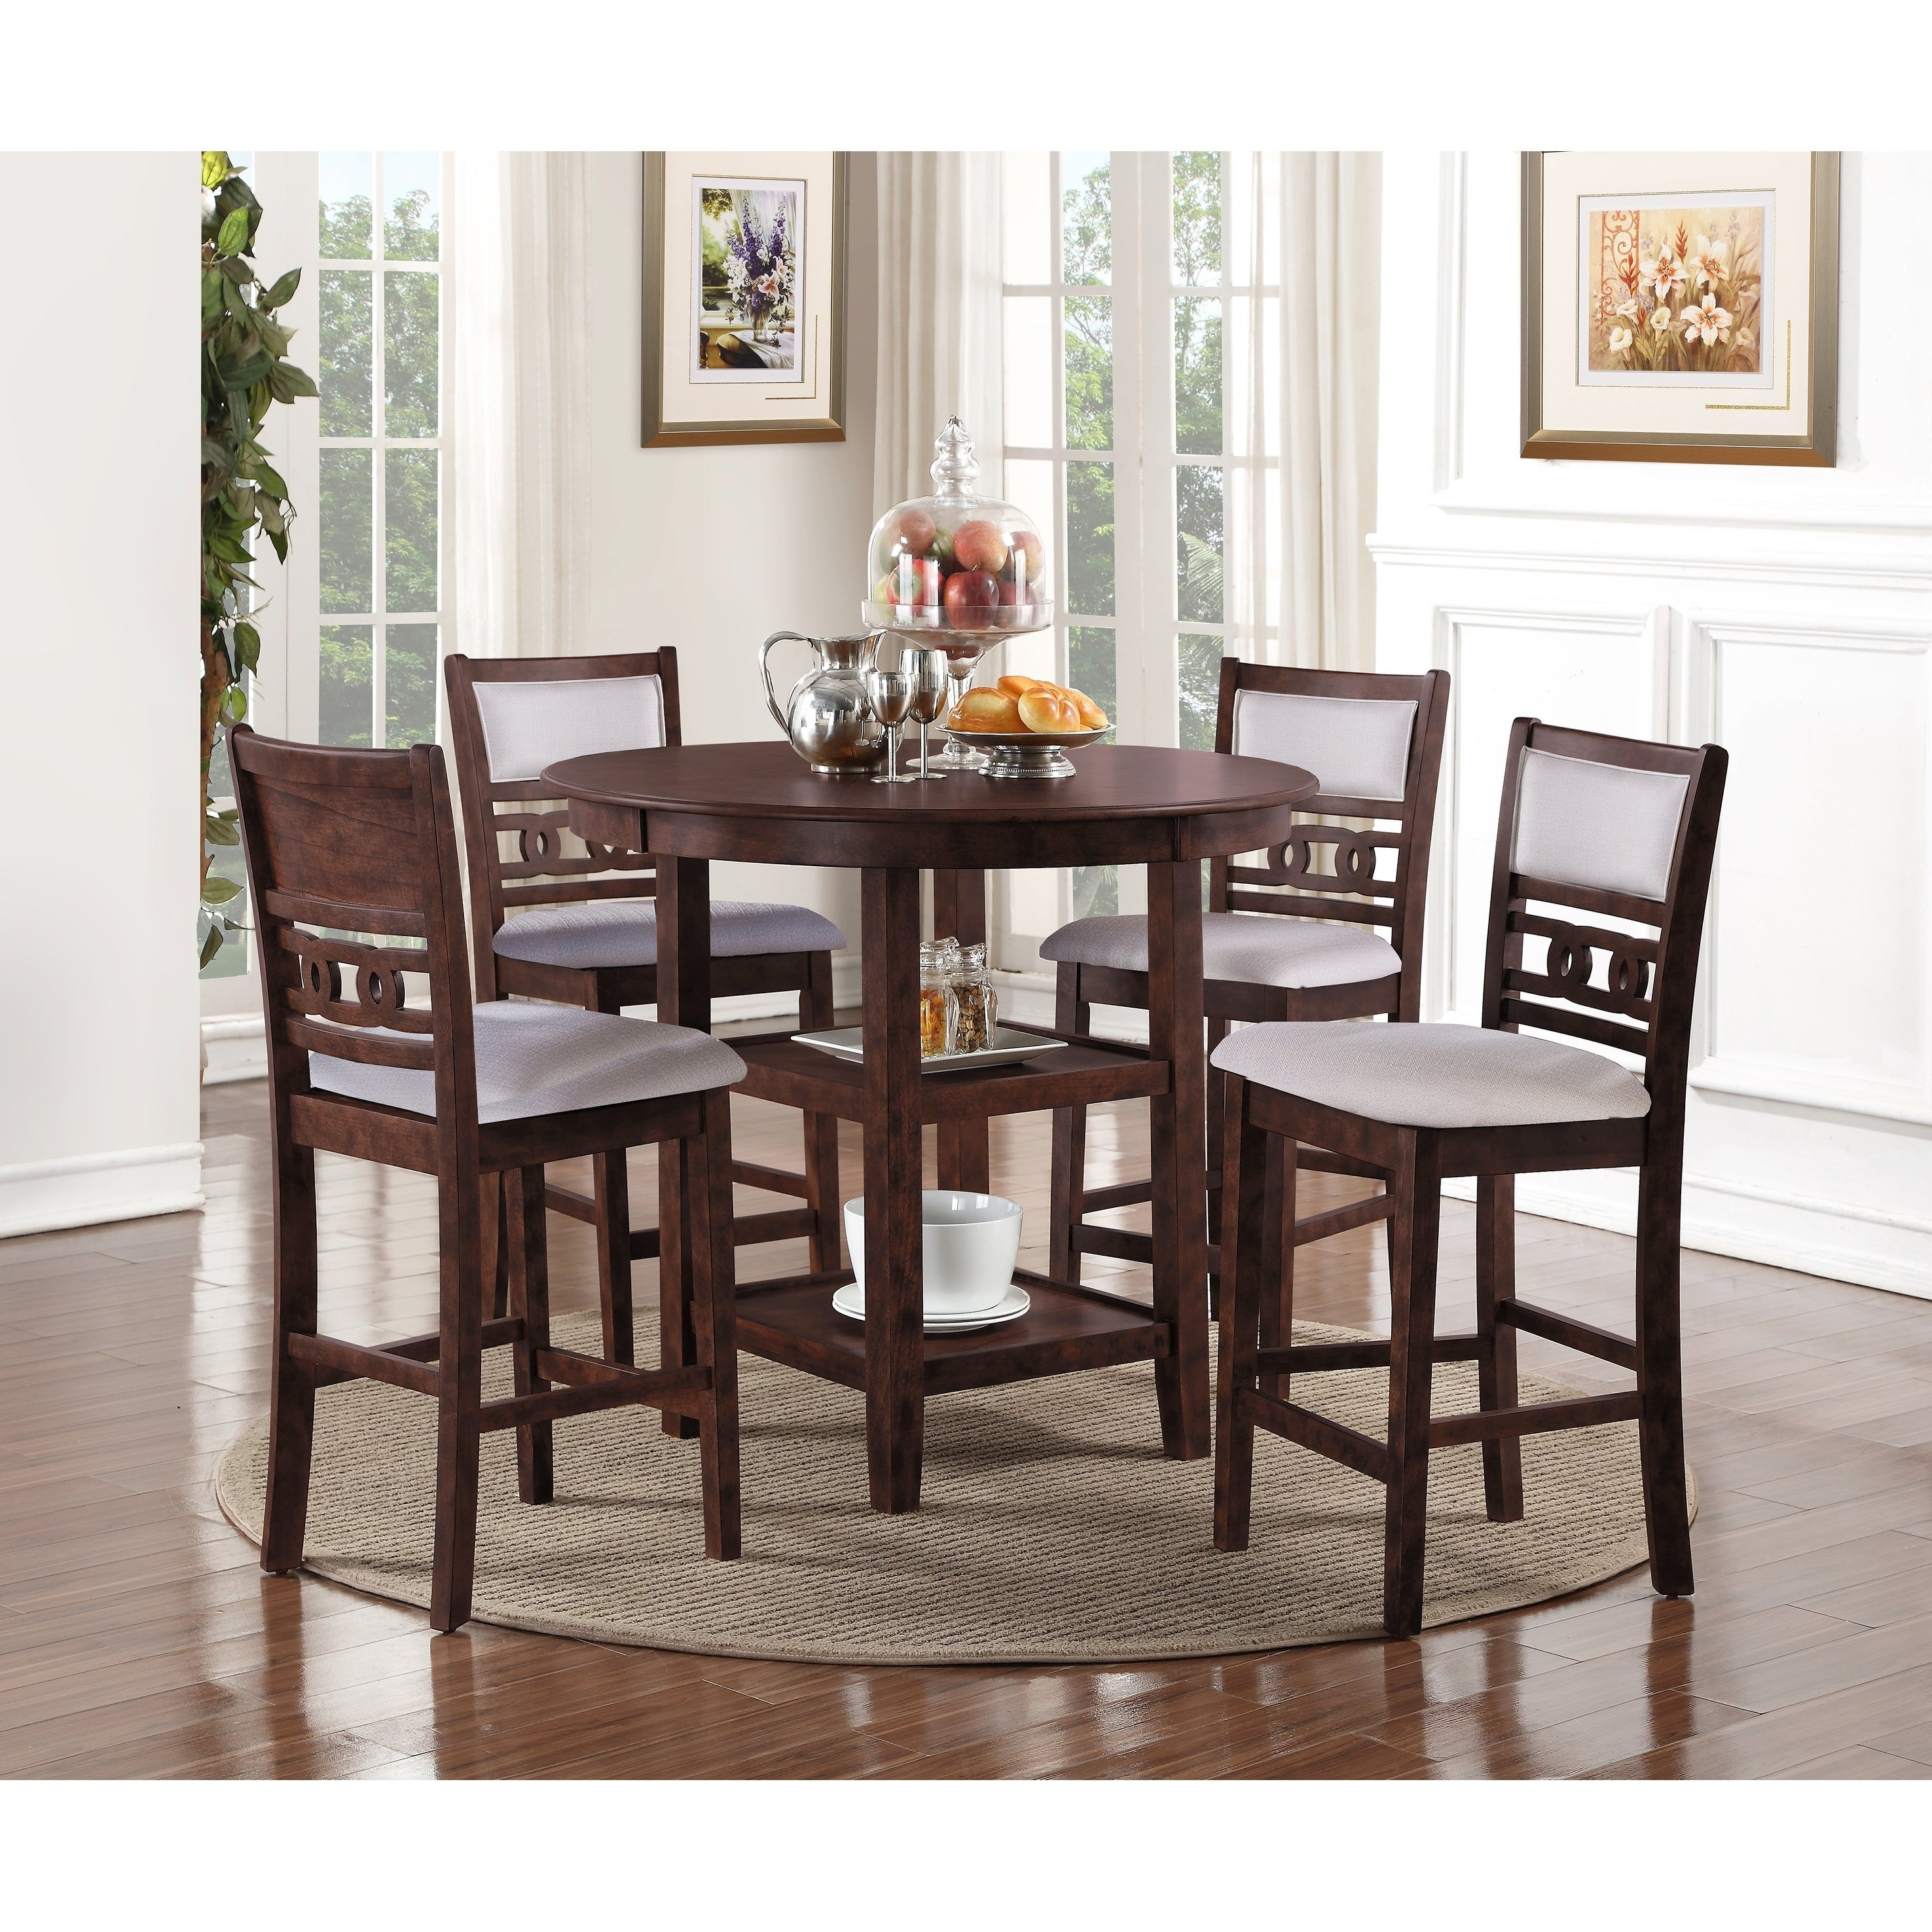 Goodman 5 Piece Solid Wood Dining Sets (Set Of 5) With Regard To Fashionable Shop Copper Grove Creteil 5 Piece Counter Height Dining Table Set (View 5 of 25)